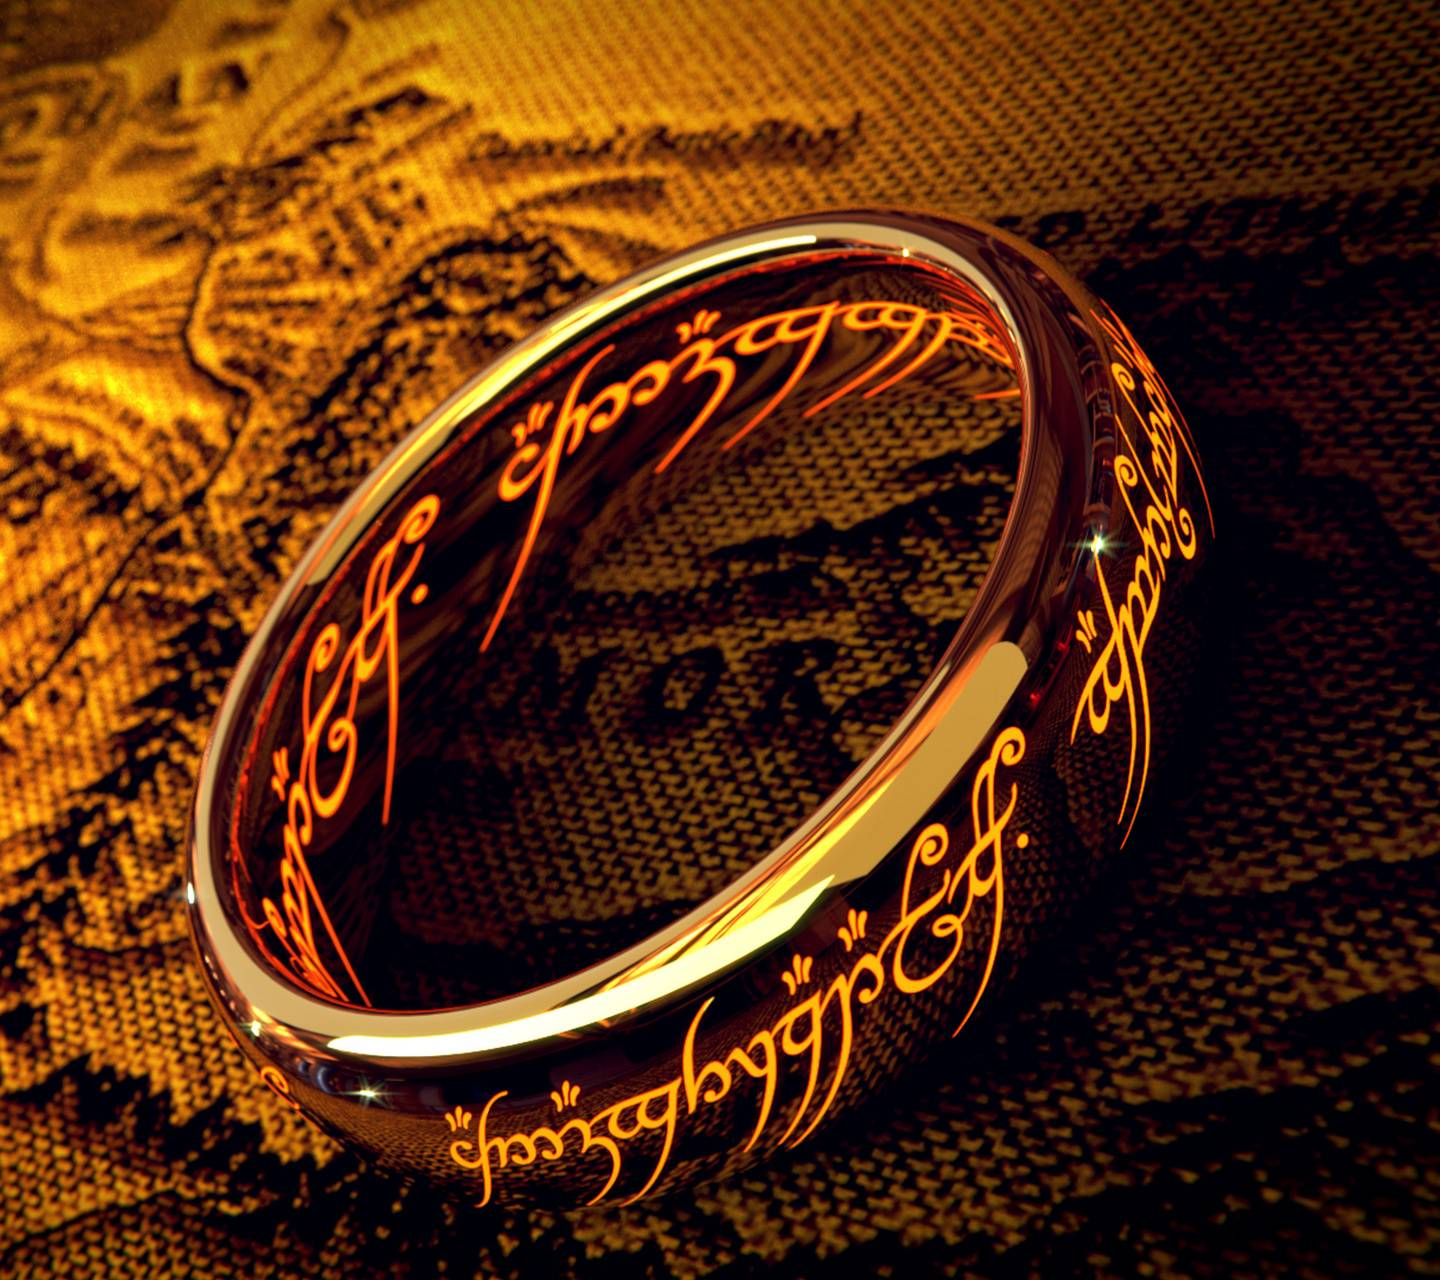 One Ring Wallpaper By Zaragil 74 Free On Zedge